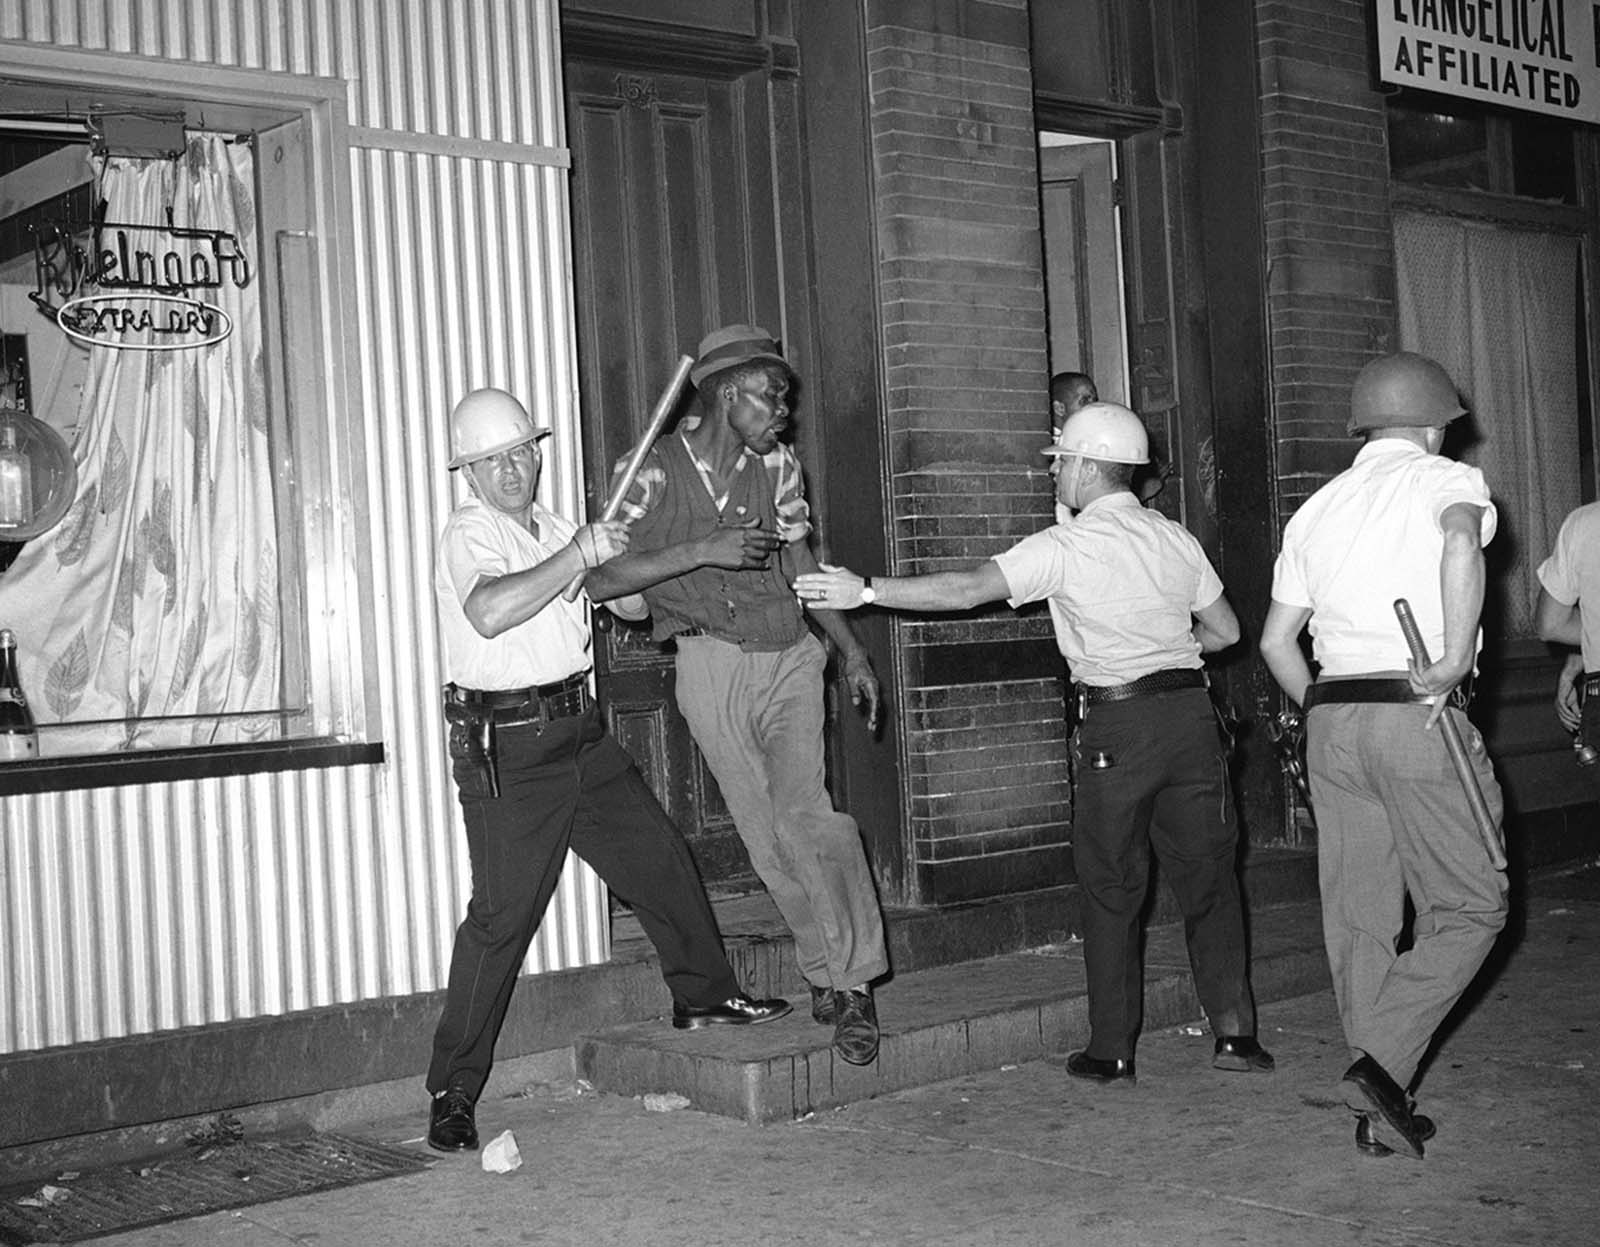 Holding their clubs in their hands, two Elizabeth policemen struggle with a man as they try to move him from area of rioting in Elizabeth, New Jersey, on August 12, 1964. Police had to fire shots in the air and use their clubs to break up the crowd of 300 to 400 white and black youths tossing bricks, bottles and gasoline bombs. It was the second night of violence in Elizabeth and Paterson, New Jersey.